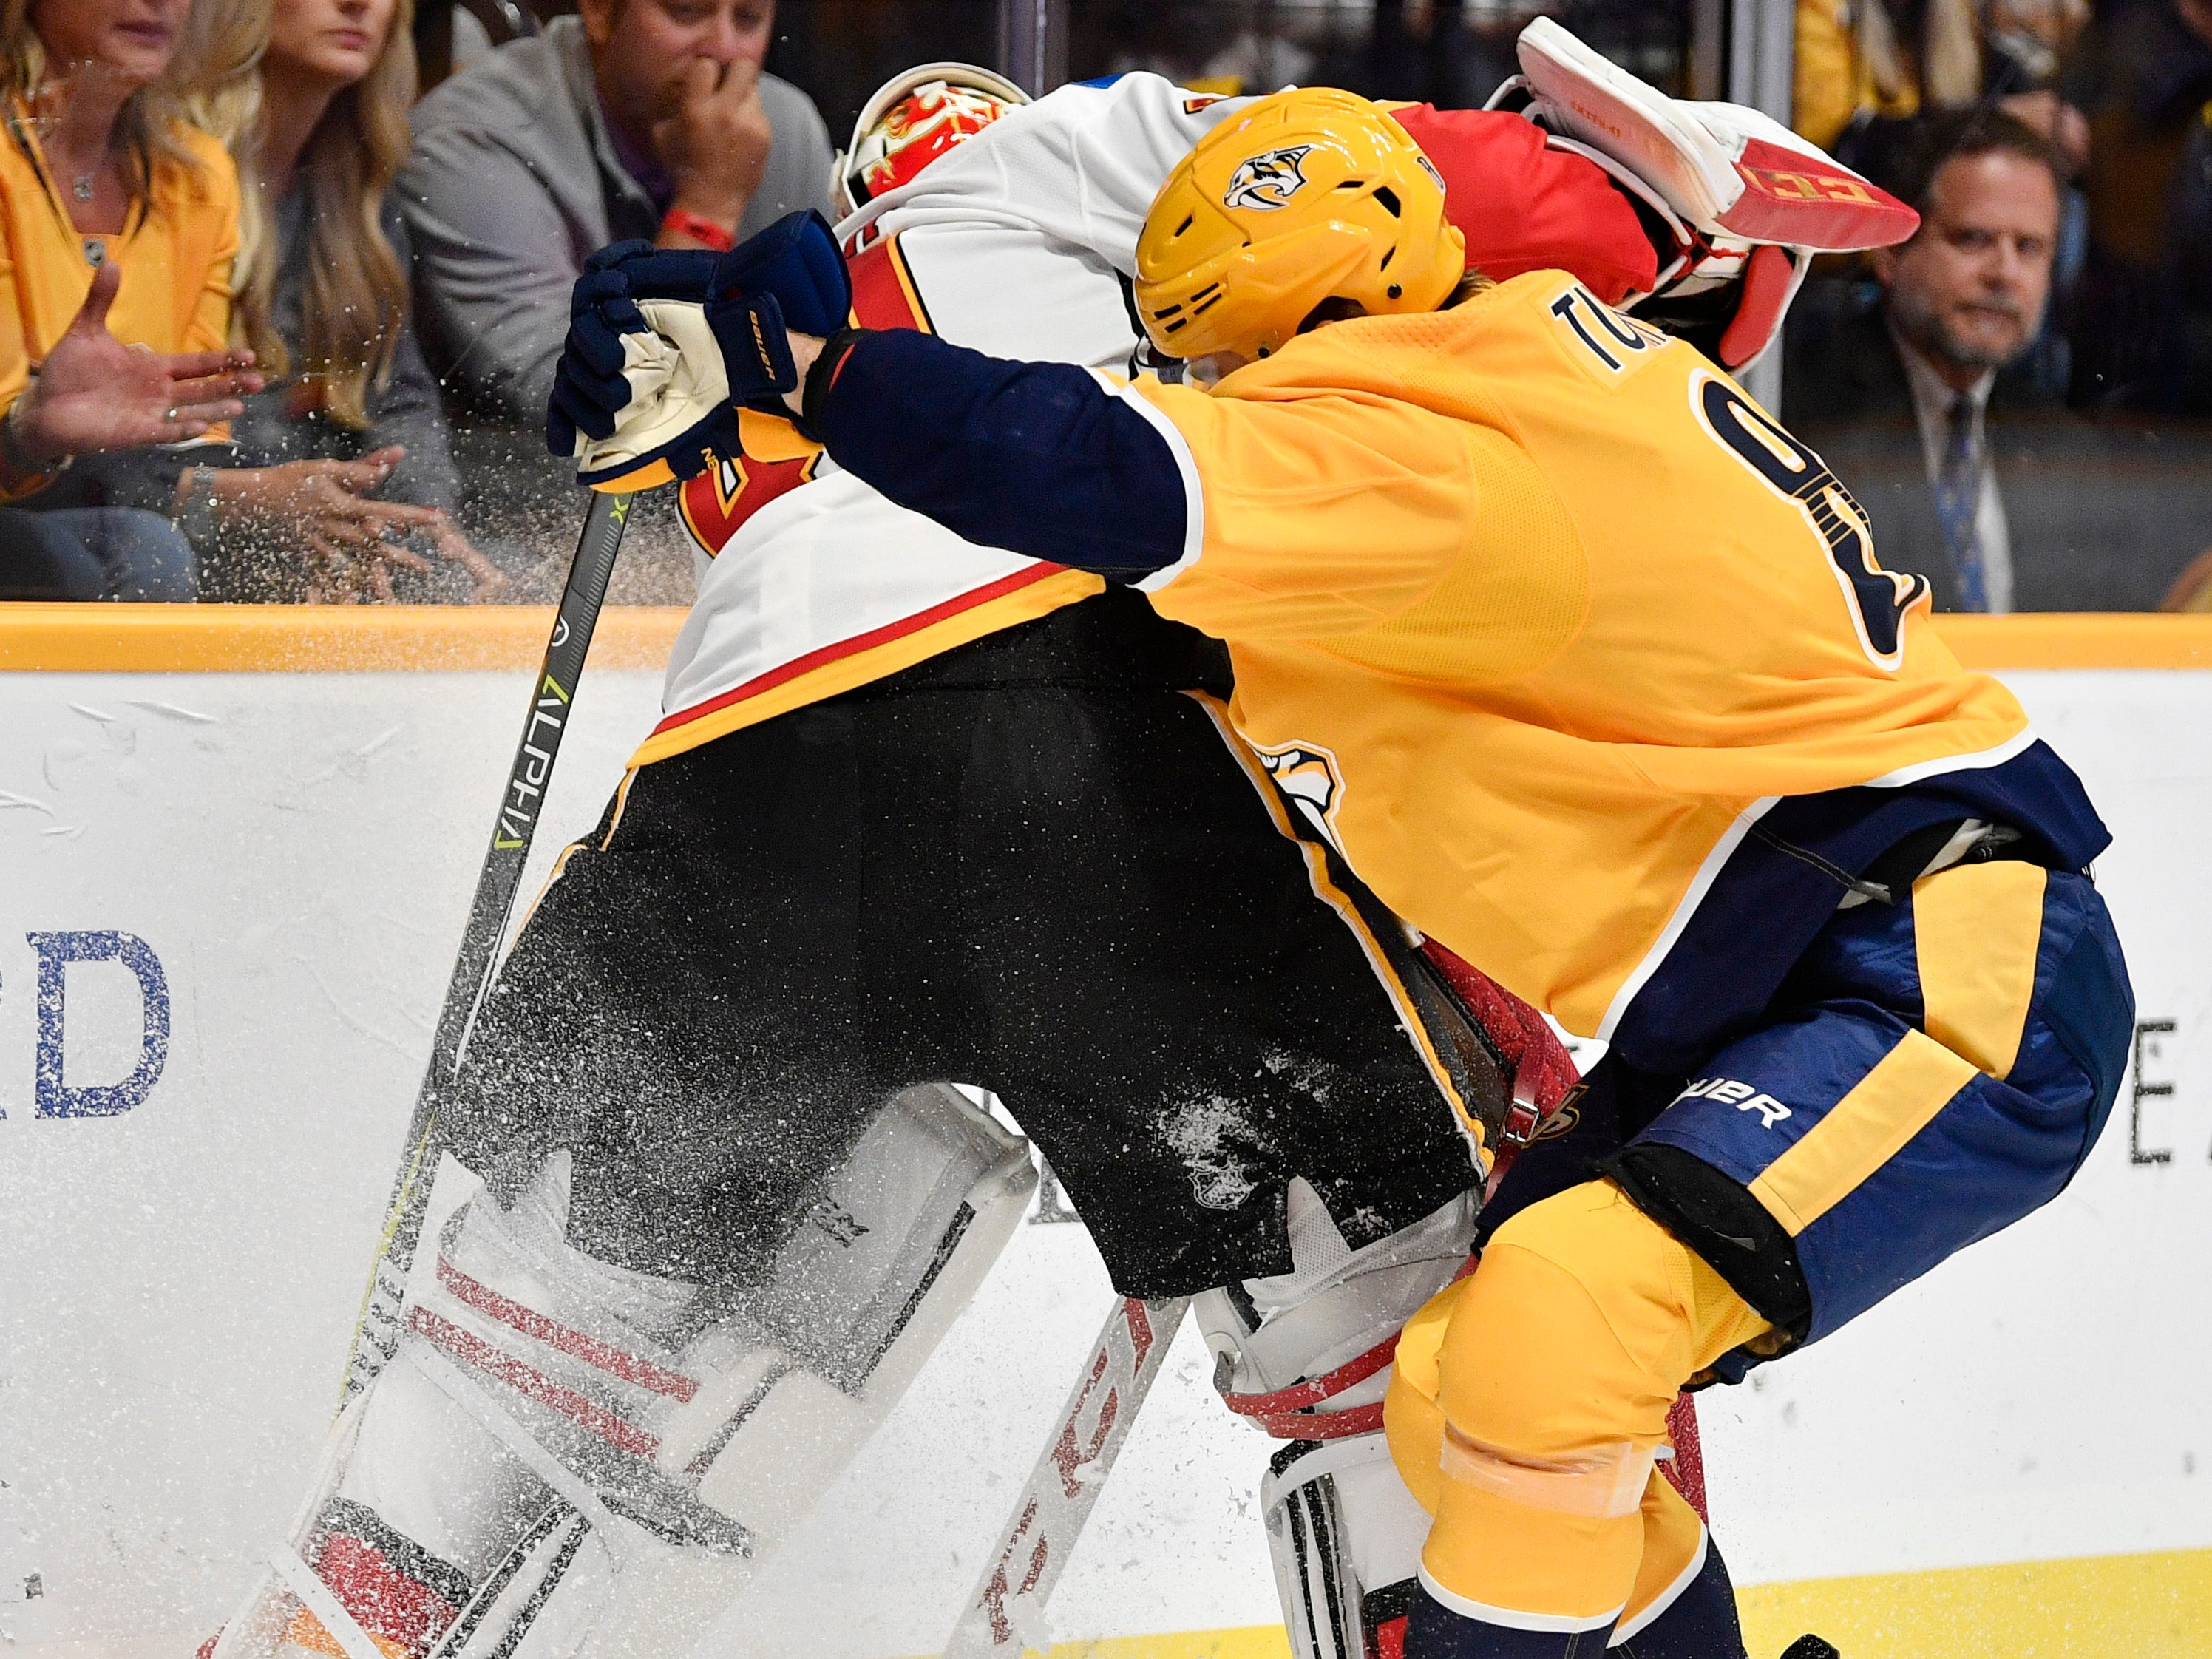 Nashville Predators center Kyle Turris (8) battles with Calgary Flames goaltender Mike Smith (41) in the first period of the home opener at Bridgestone Arena in Nashville, Tenn., Tuesday, Oct. 9, 2018.